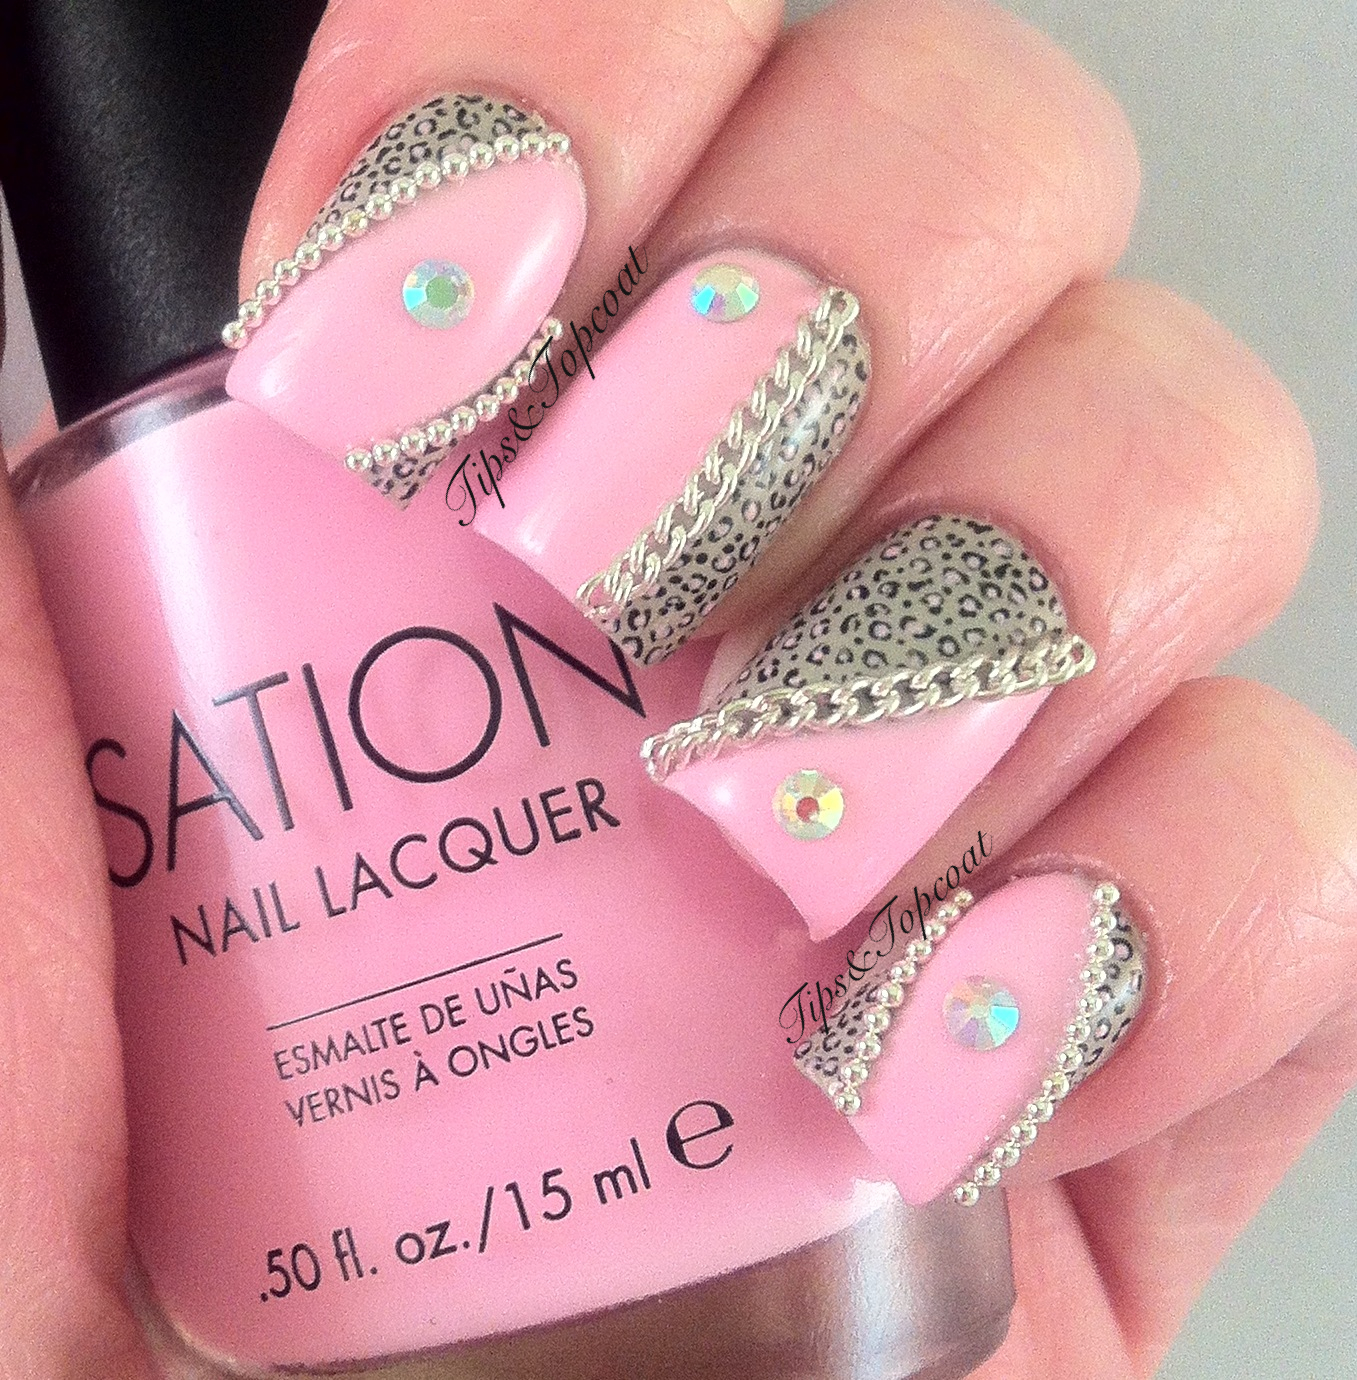 10 Acrylic Nail Designs With Rhinestones Images Acrylic Nails With